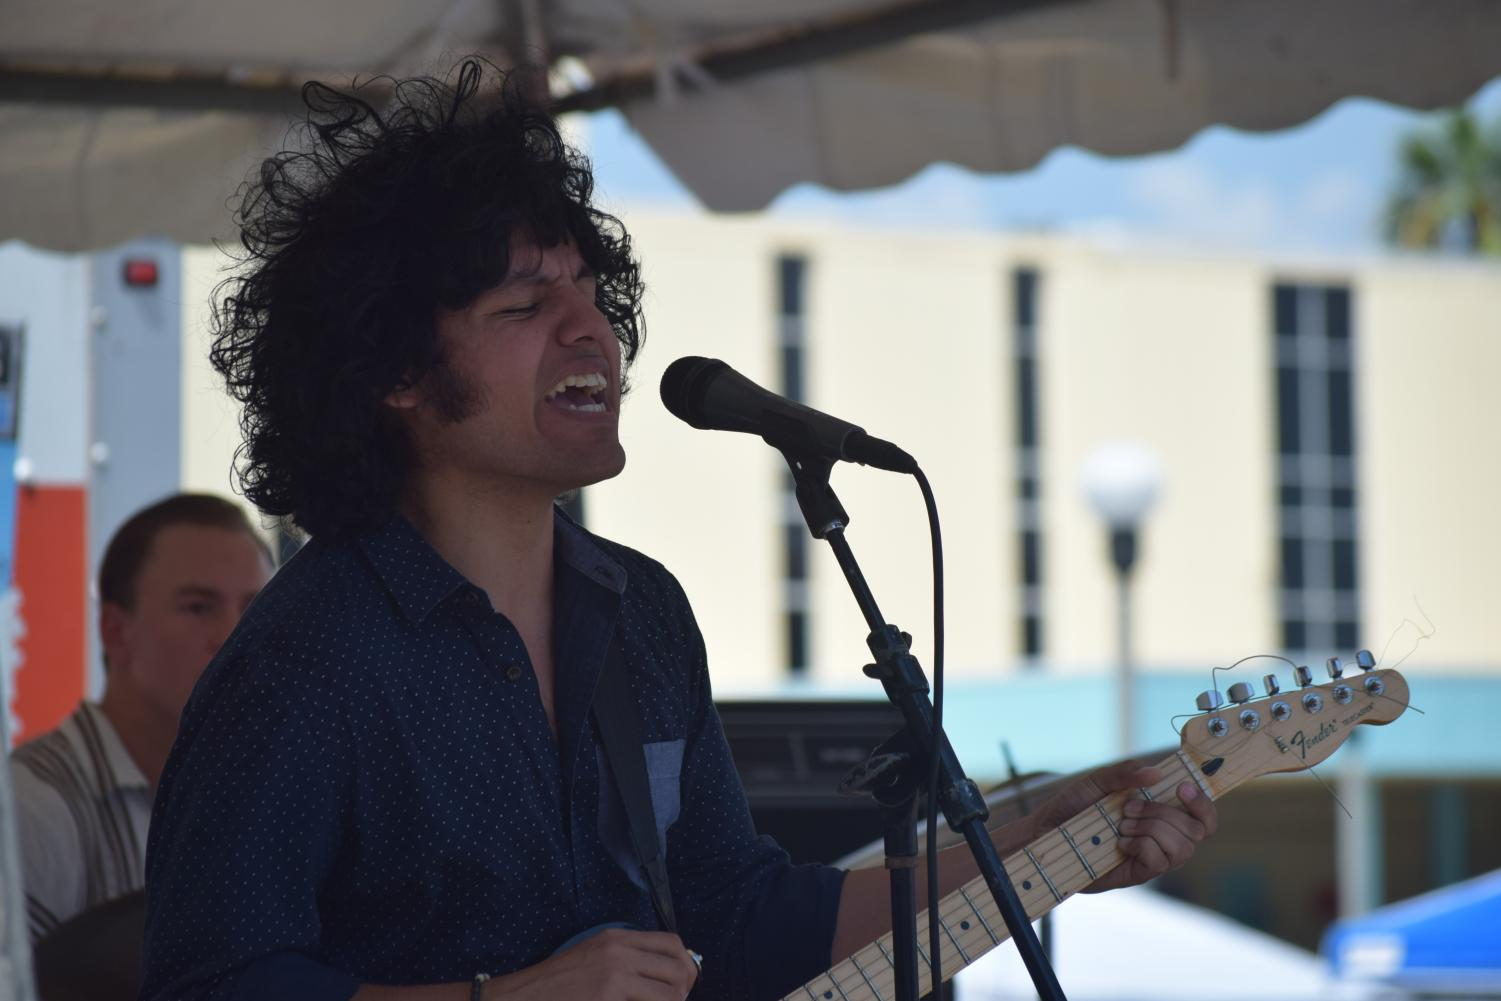 Raul Alonzo Jr./ISLAND WAVES - Jesse De Los Santos of the Blind Owls sings during their set at the ¡Que Bueno! Taco Fest this past September. The Blind Owls will be bringing their brand of high-energy rock and roll to two stages this weekend: Bourbon St. for Hippie Halloween on Friday and the Halloween Dance Party at The NASA on Saturday.